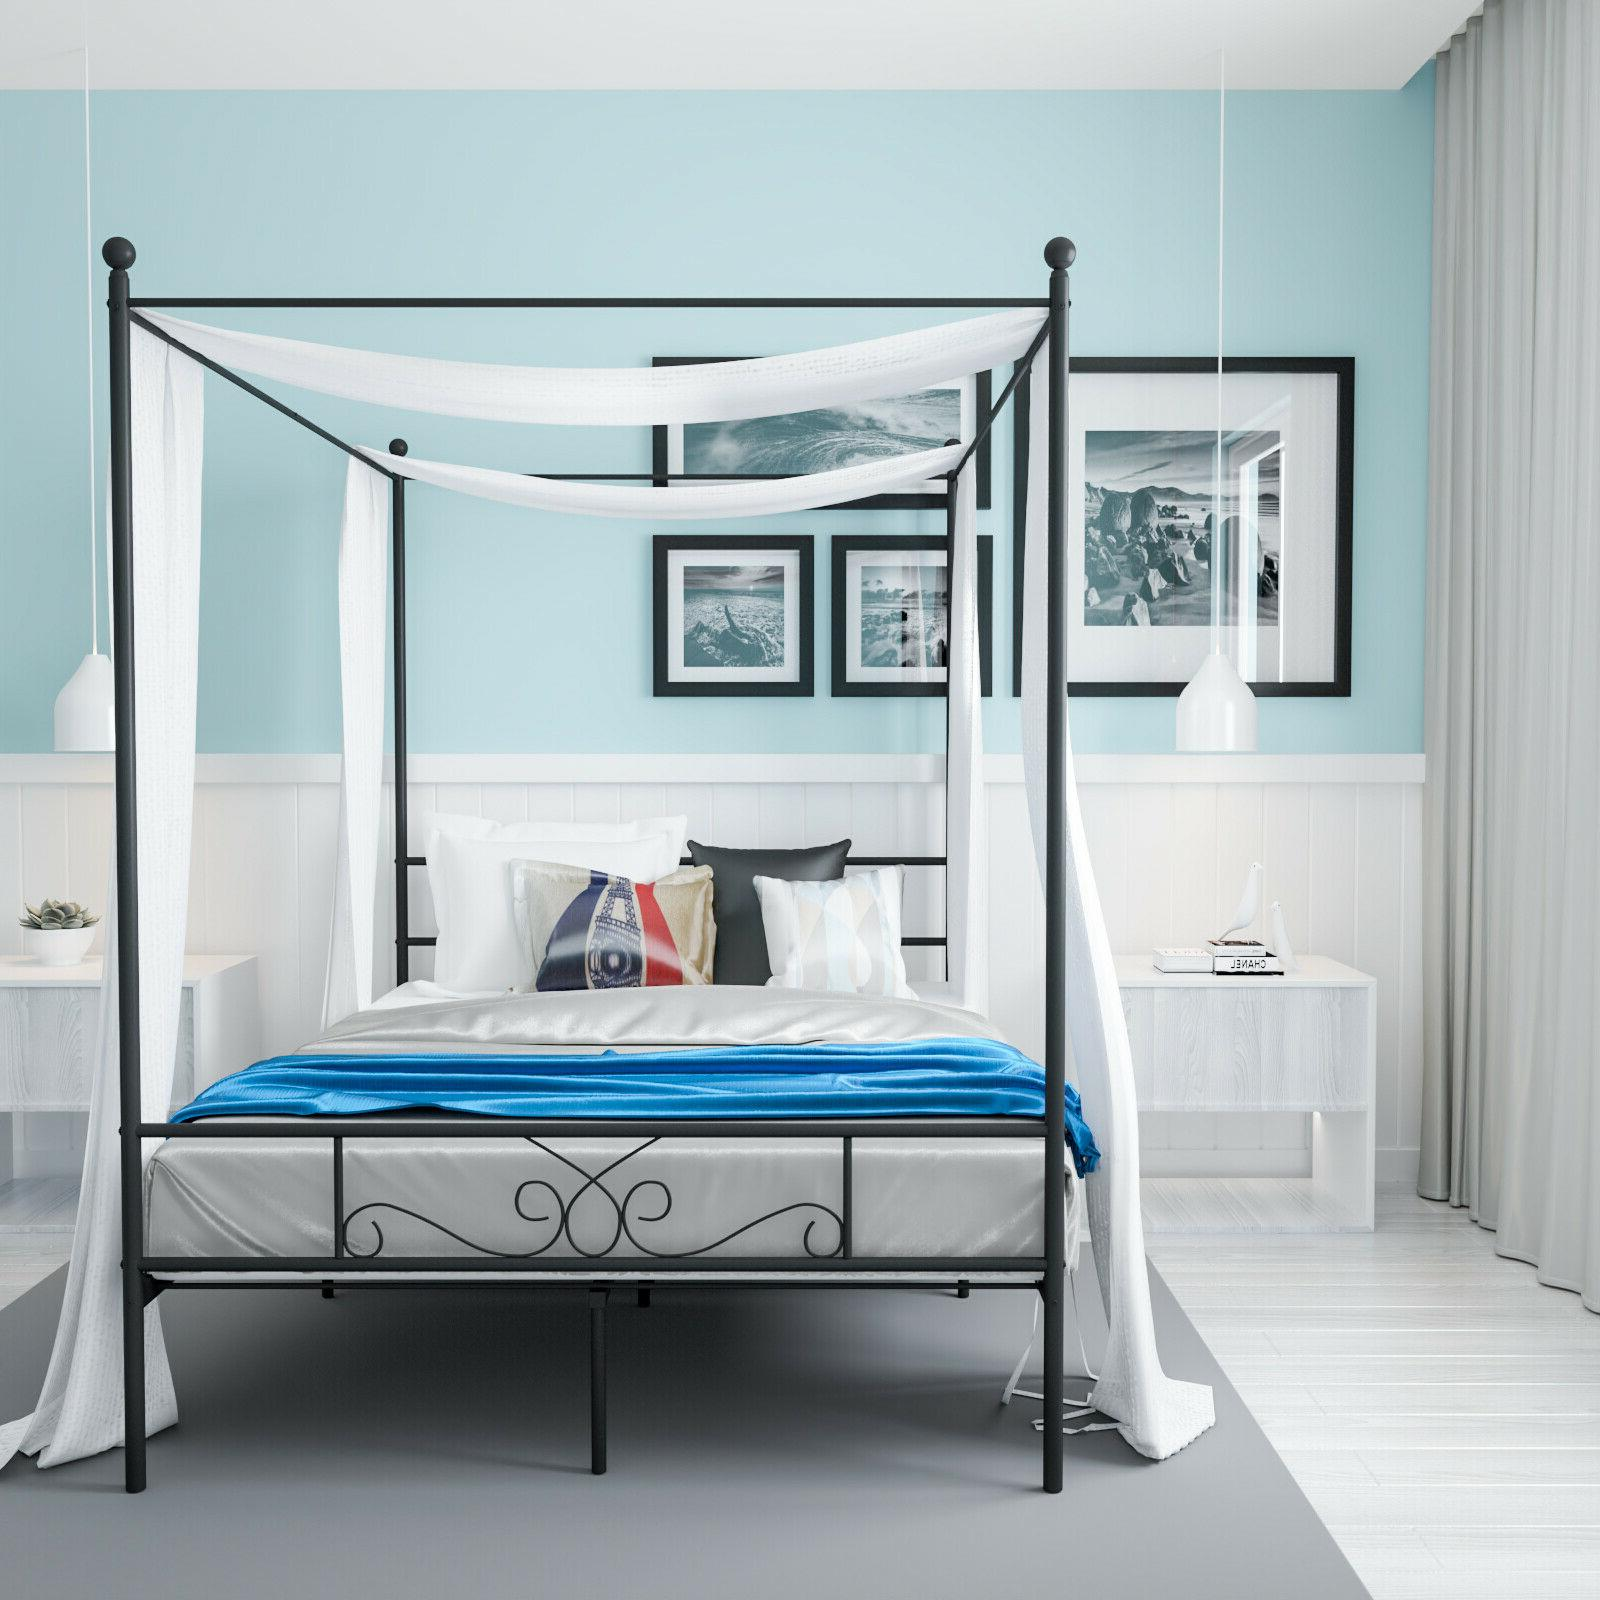 Queen Size 4 Corners Post Metal Canopy Bed Frame Platform Be